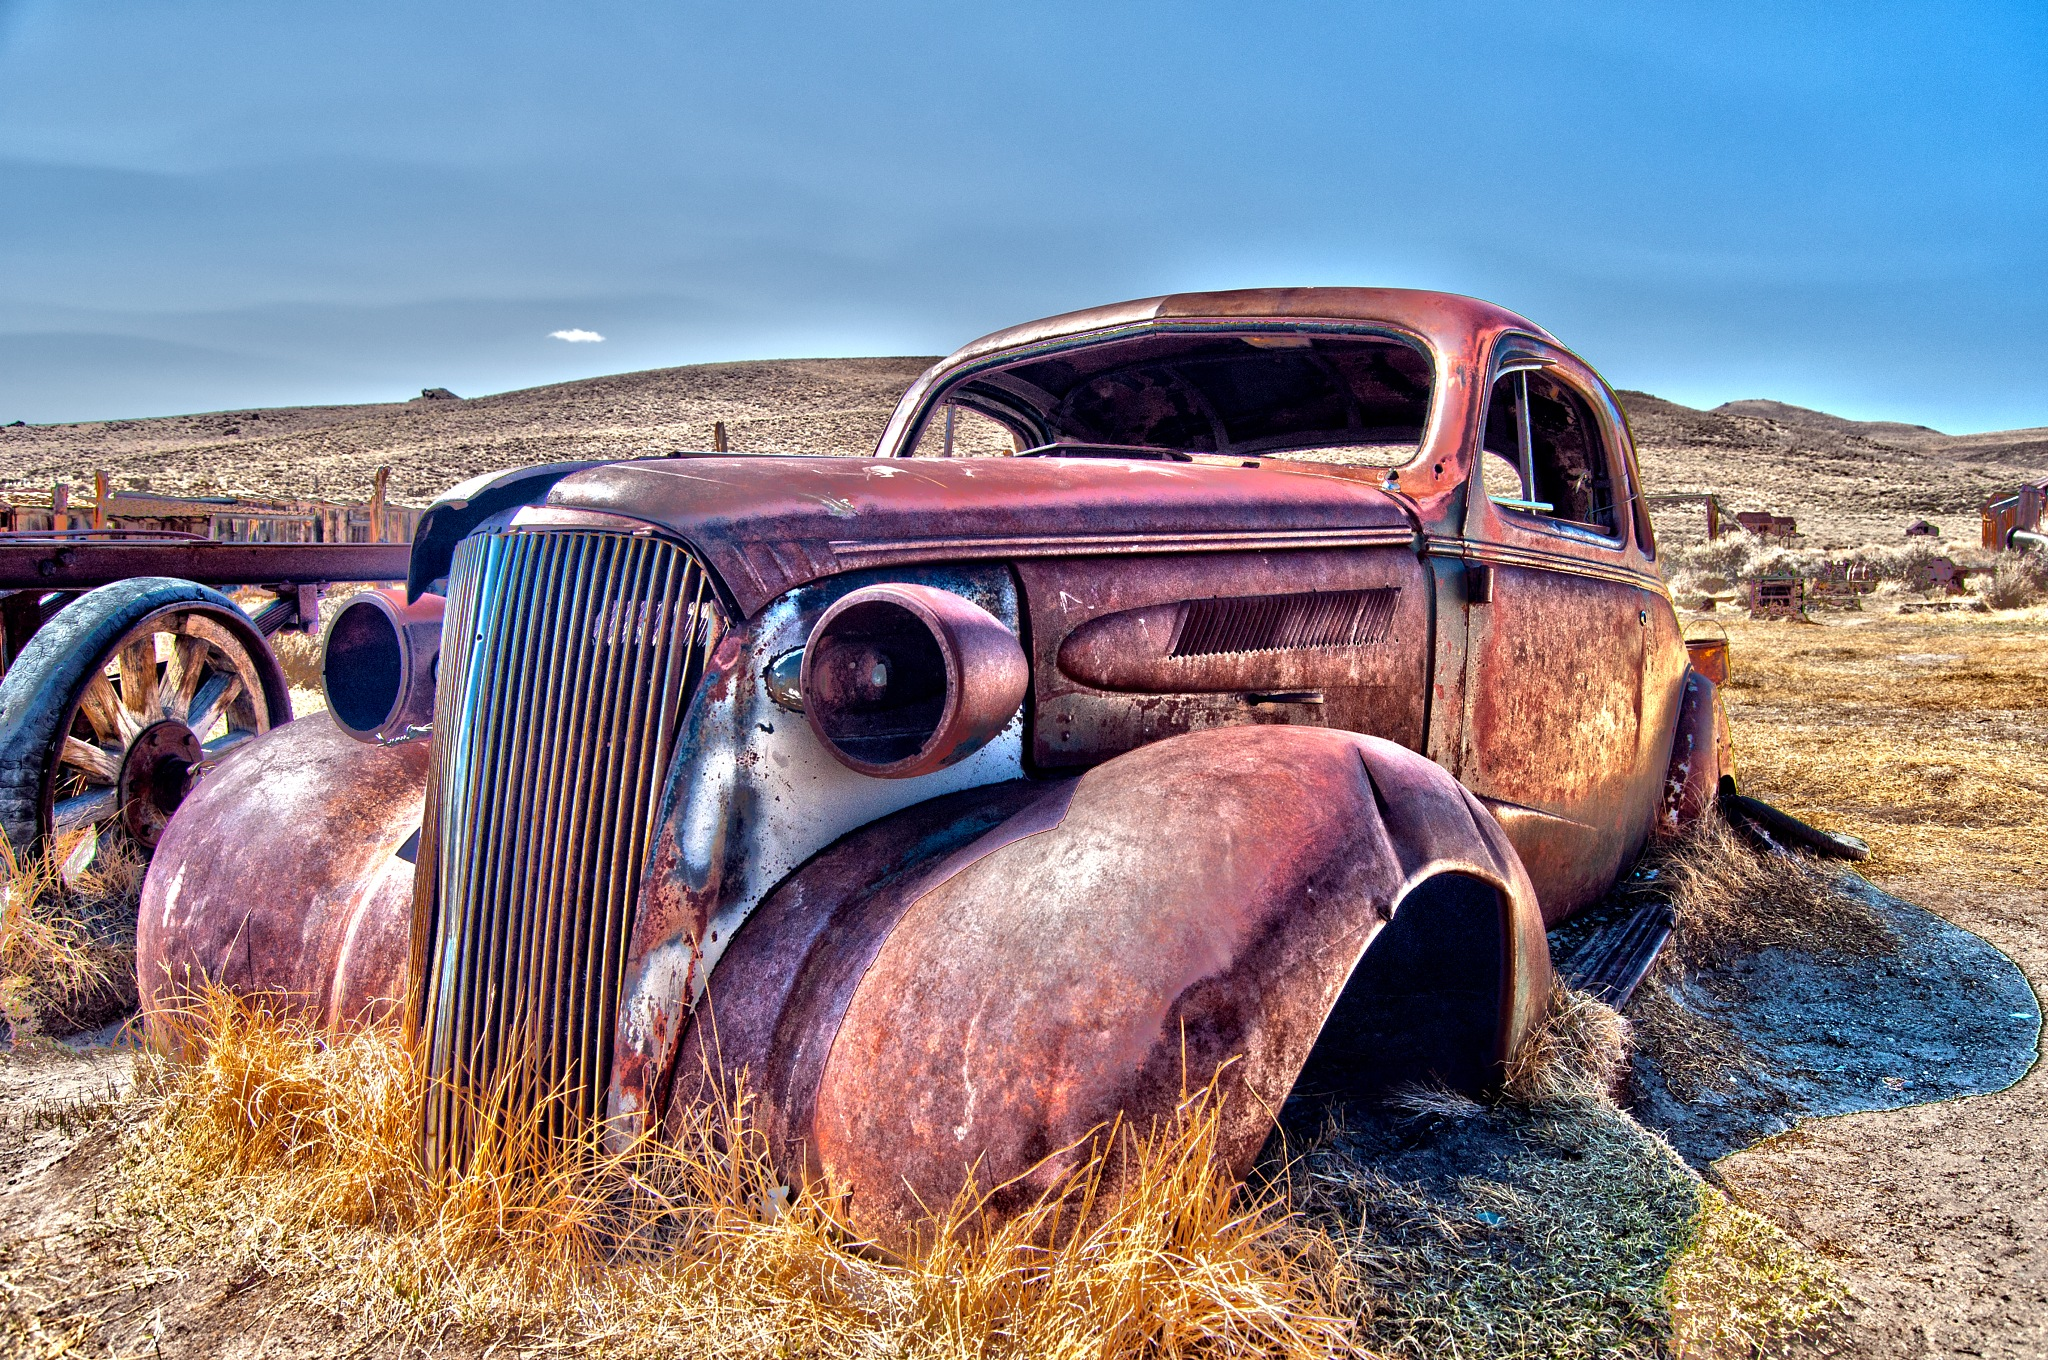 Rusty ride by Neal Lacroix